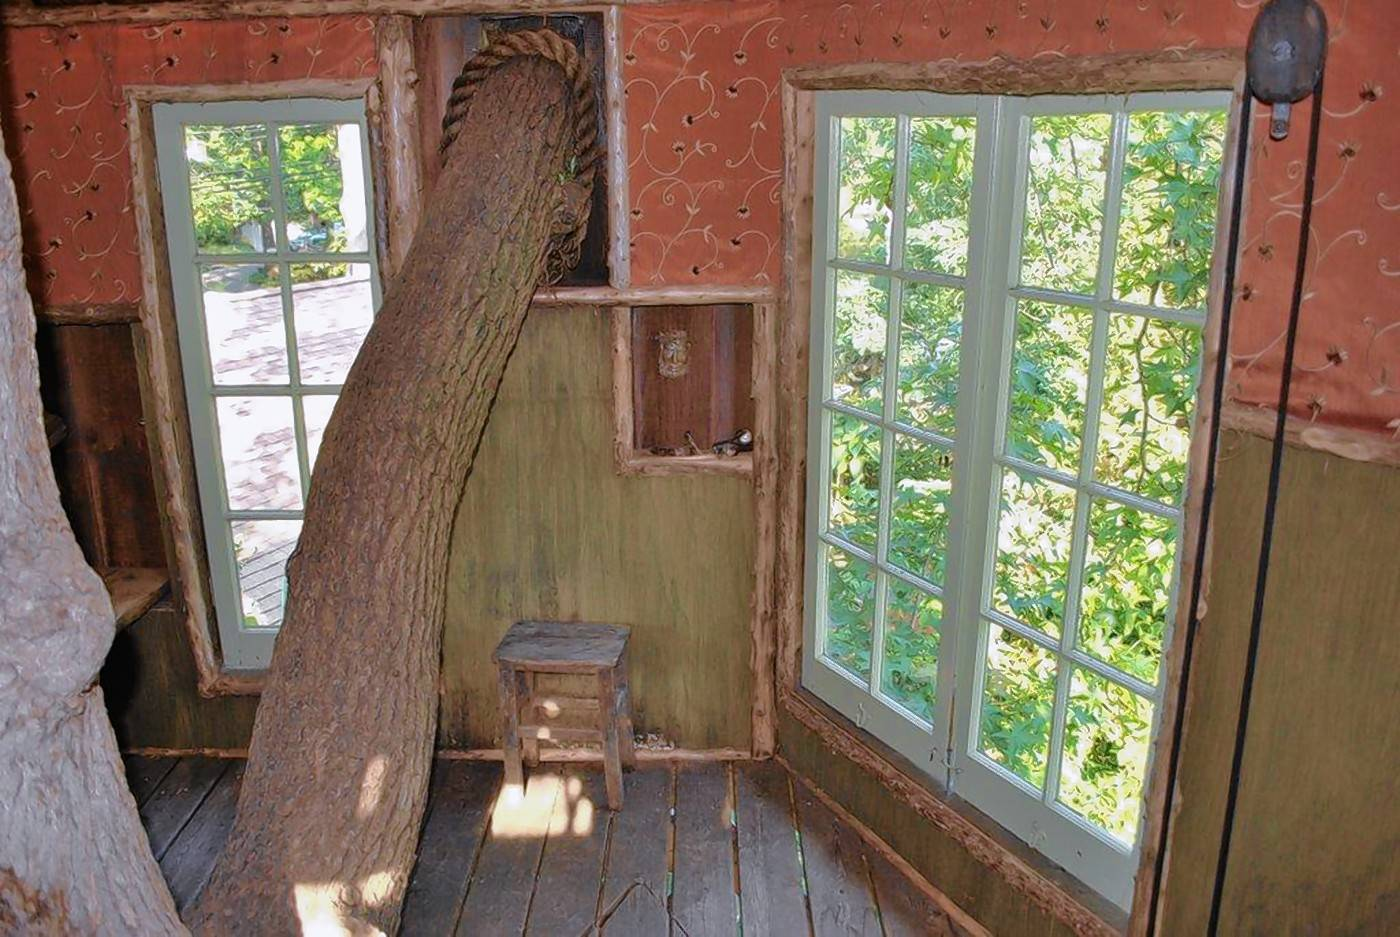 The tree house shows off Pierre Moitrier's skills as a craftsman and offers an aerial view of a distinctive, personal garden 15 years in the making.